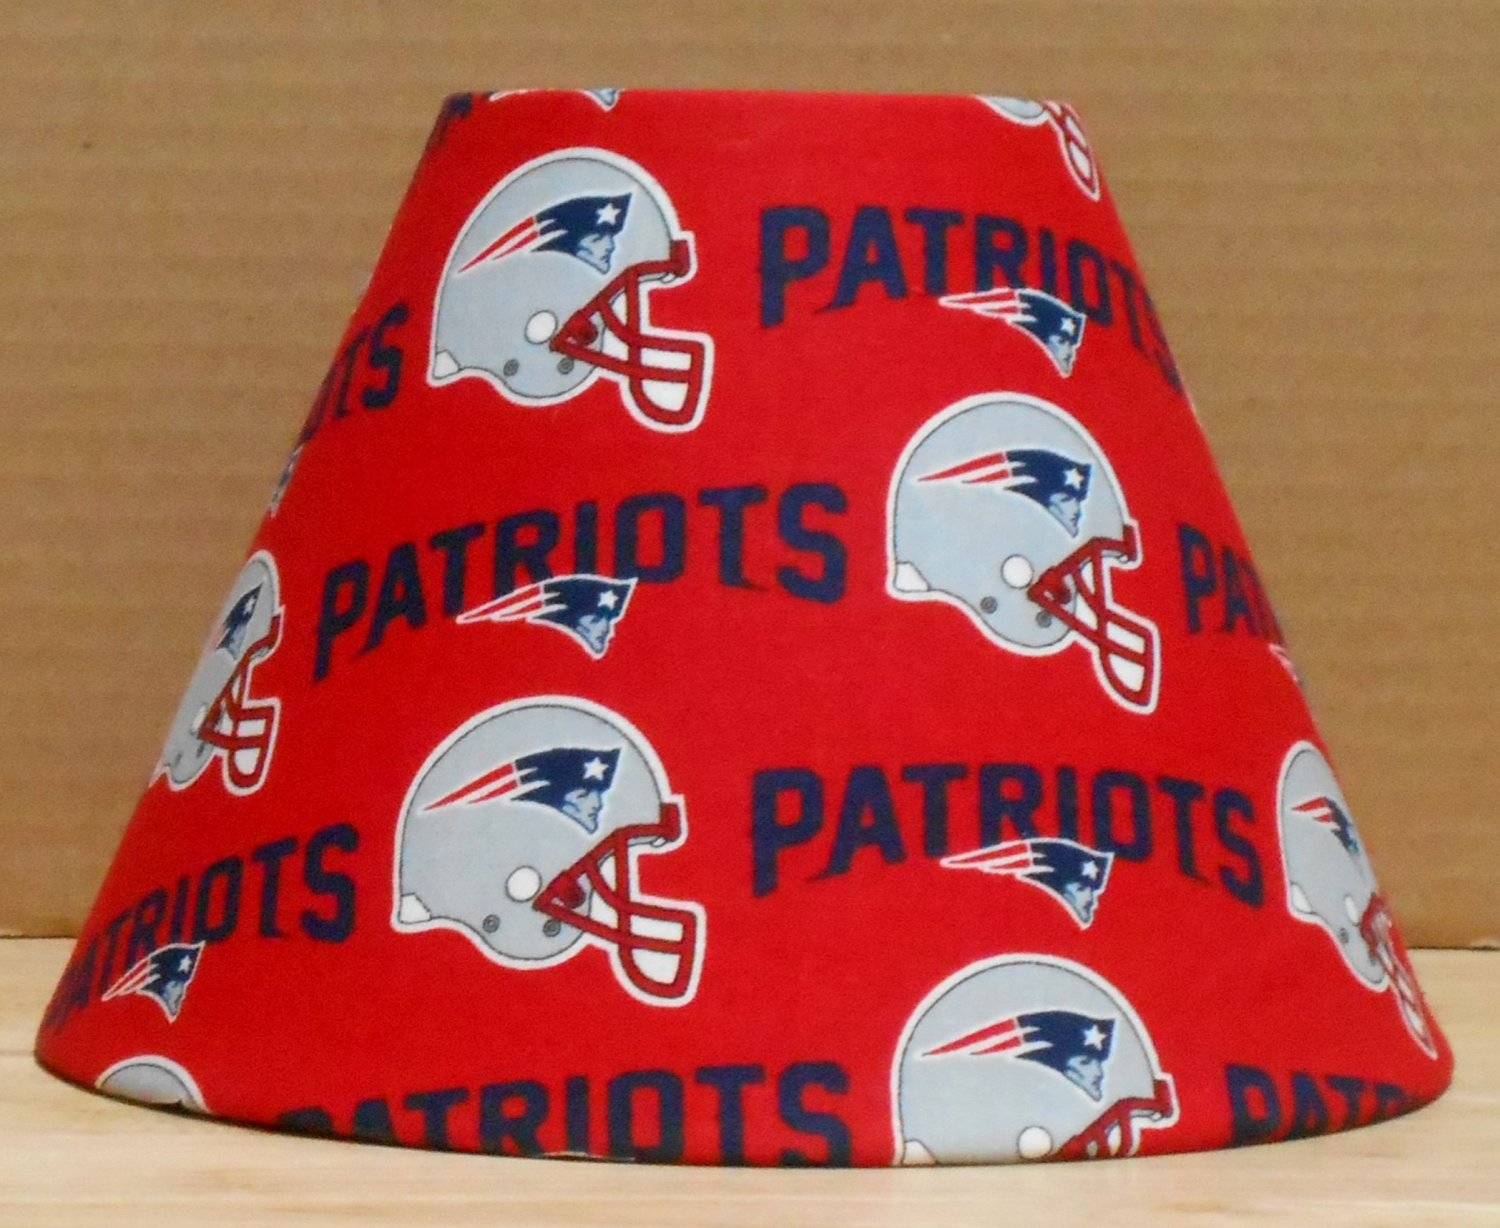 New england patriots fabric lamp shade lampshade sports nfl new england patriots fabric lamp shade lampshade sports nfl football handmade desk table mozeypictures Images